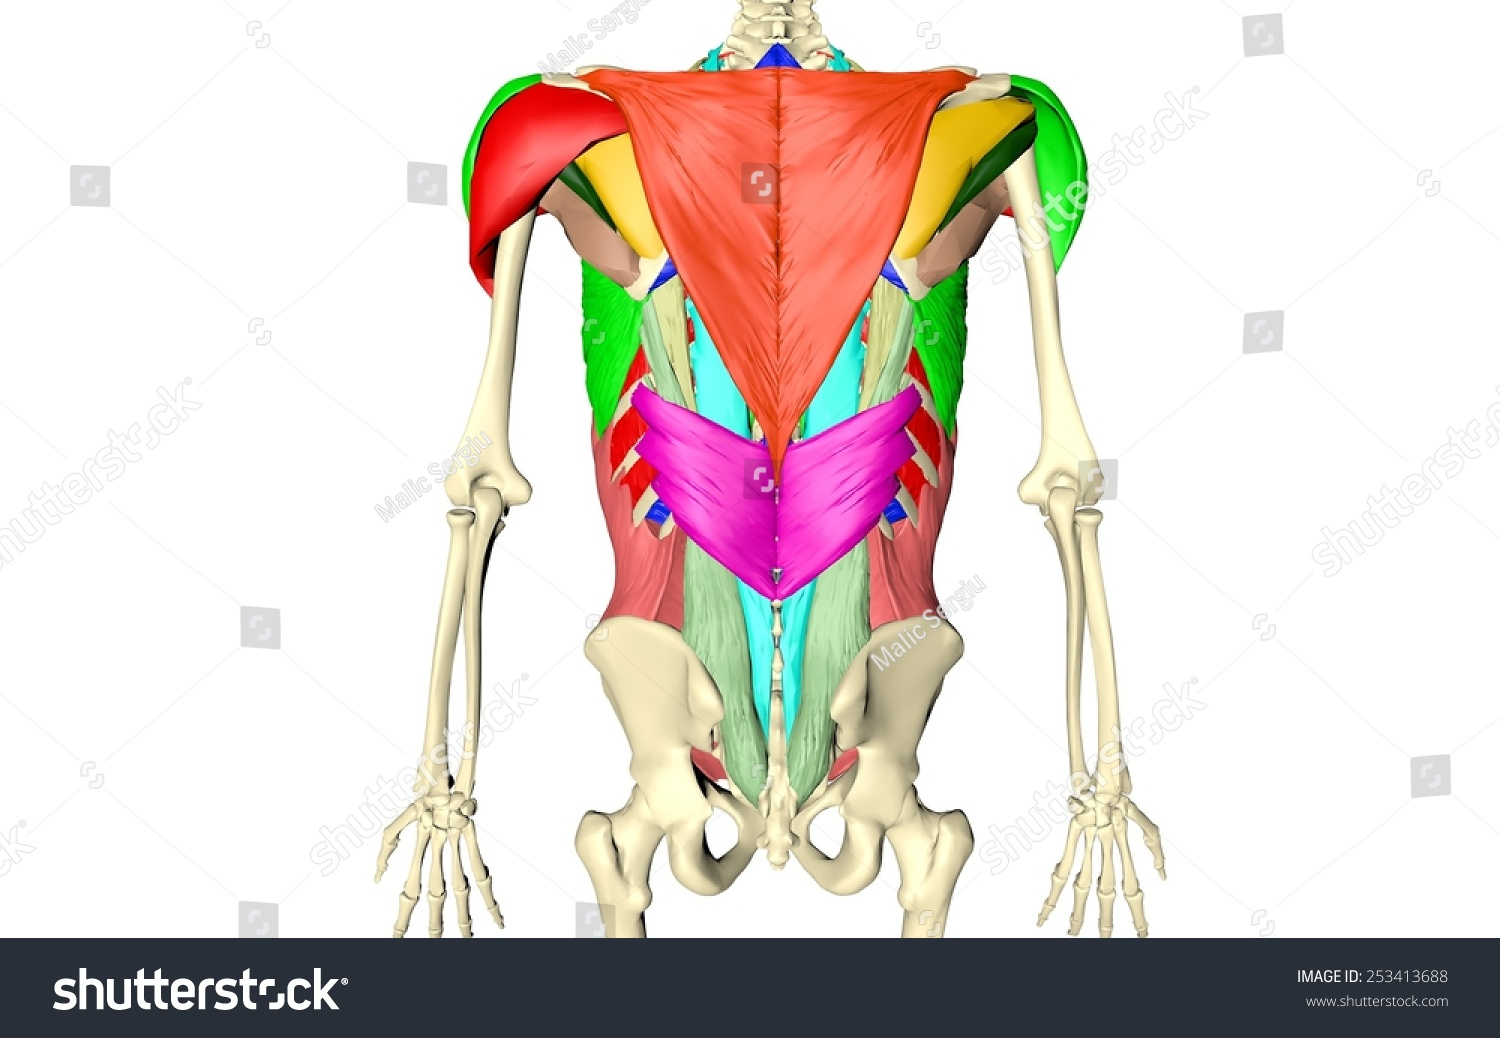 Body Muscles Body Skeleton Spinal Muscles Stock Illustration ...